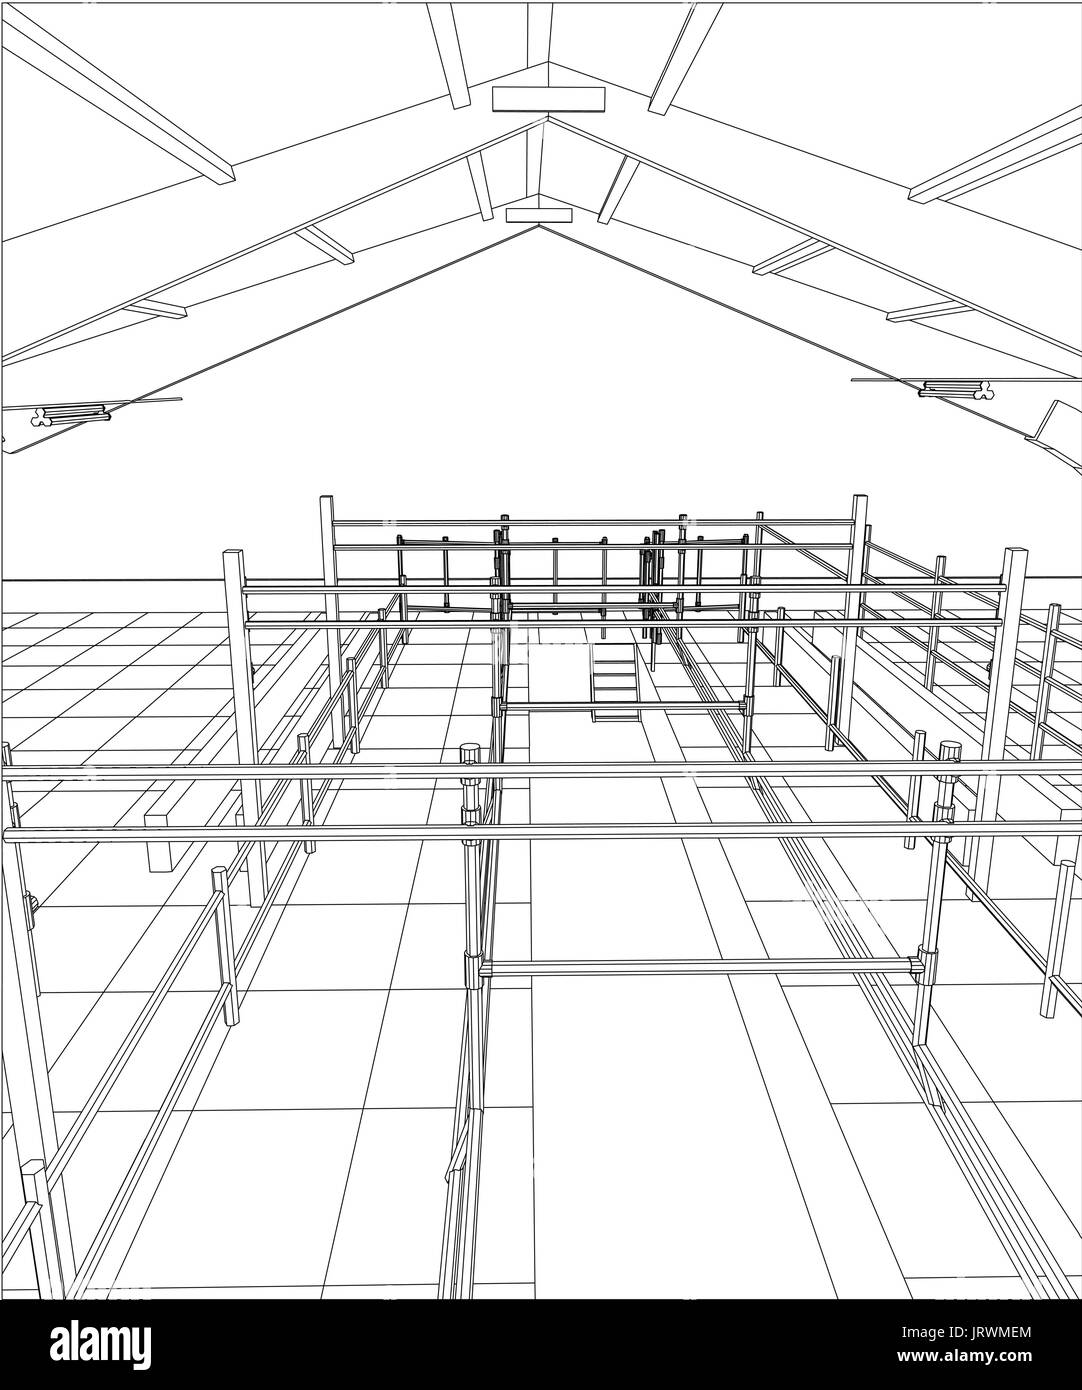 industrial building wireframe for abstract background tracing stock